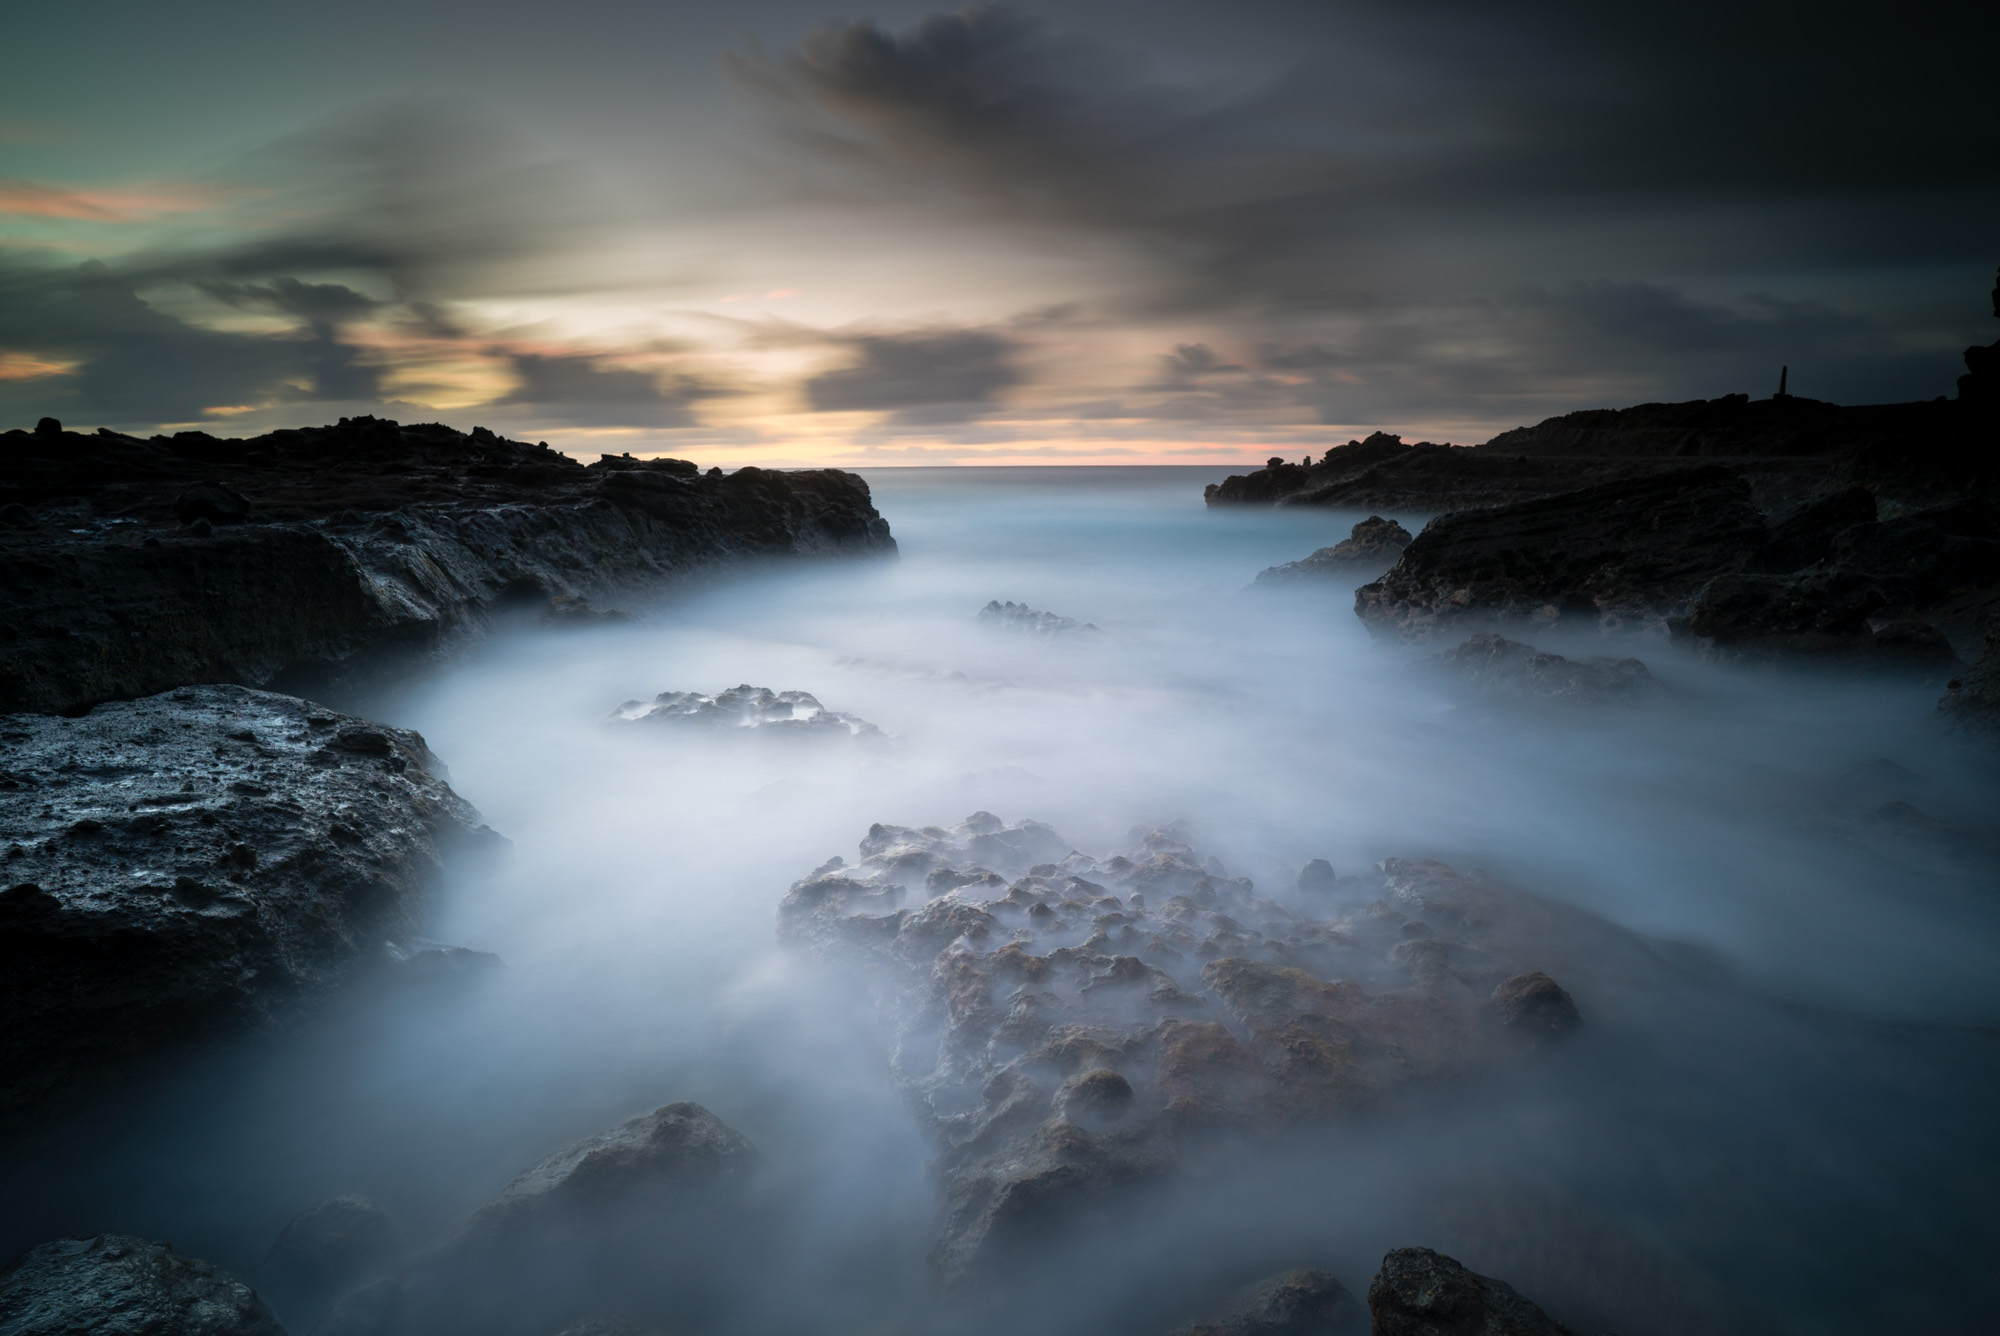 Sandy Beach Park Lee Filter Big Stopper & 3 stop medium grad Sony A7S II    |    181 sec.    |    f/8   |    ISO 50    |    Zeiss Batis 18mm  Edited in Lightroom CC 2015  Copyright 2016 Ryan Sakamoto, All rights reserved